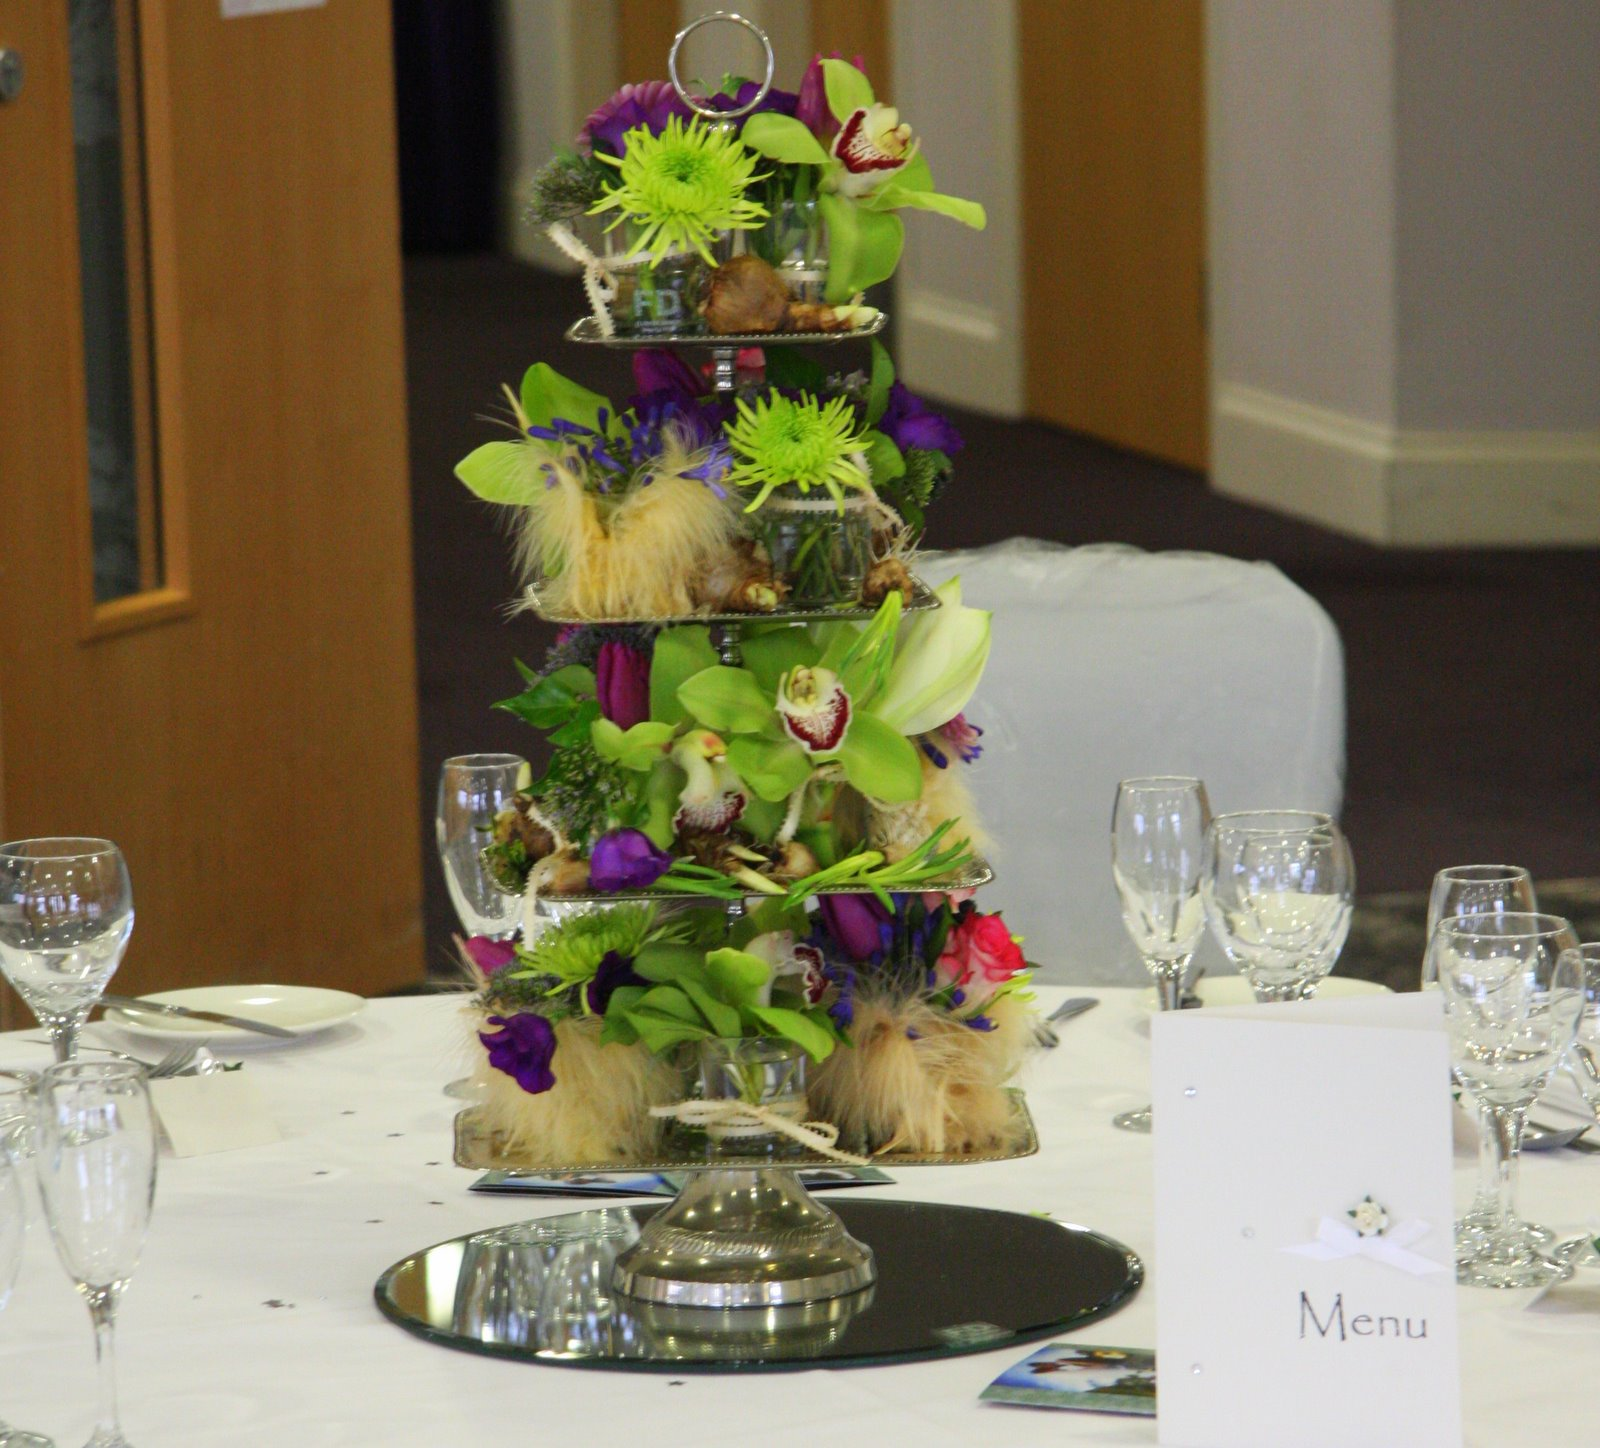 Flower design table centrepieces table centrepiece cake for Table centrepiece